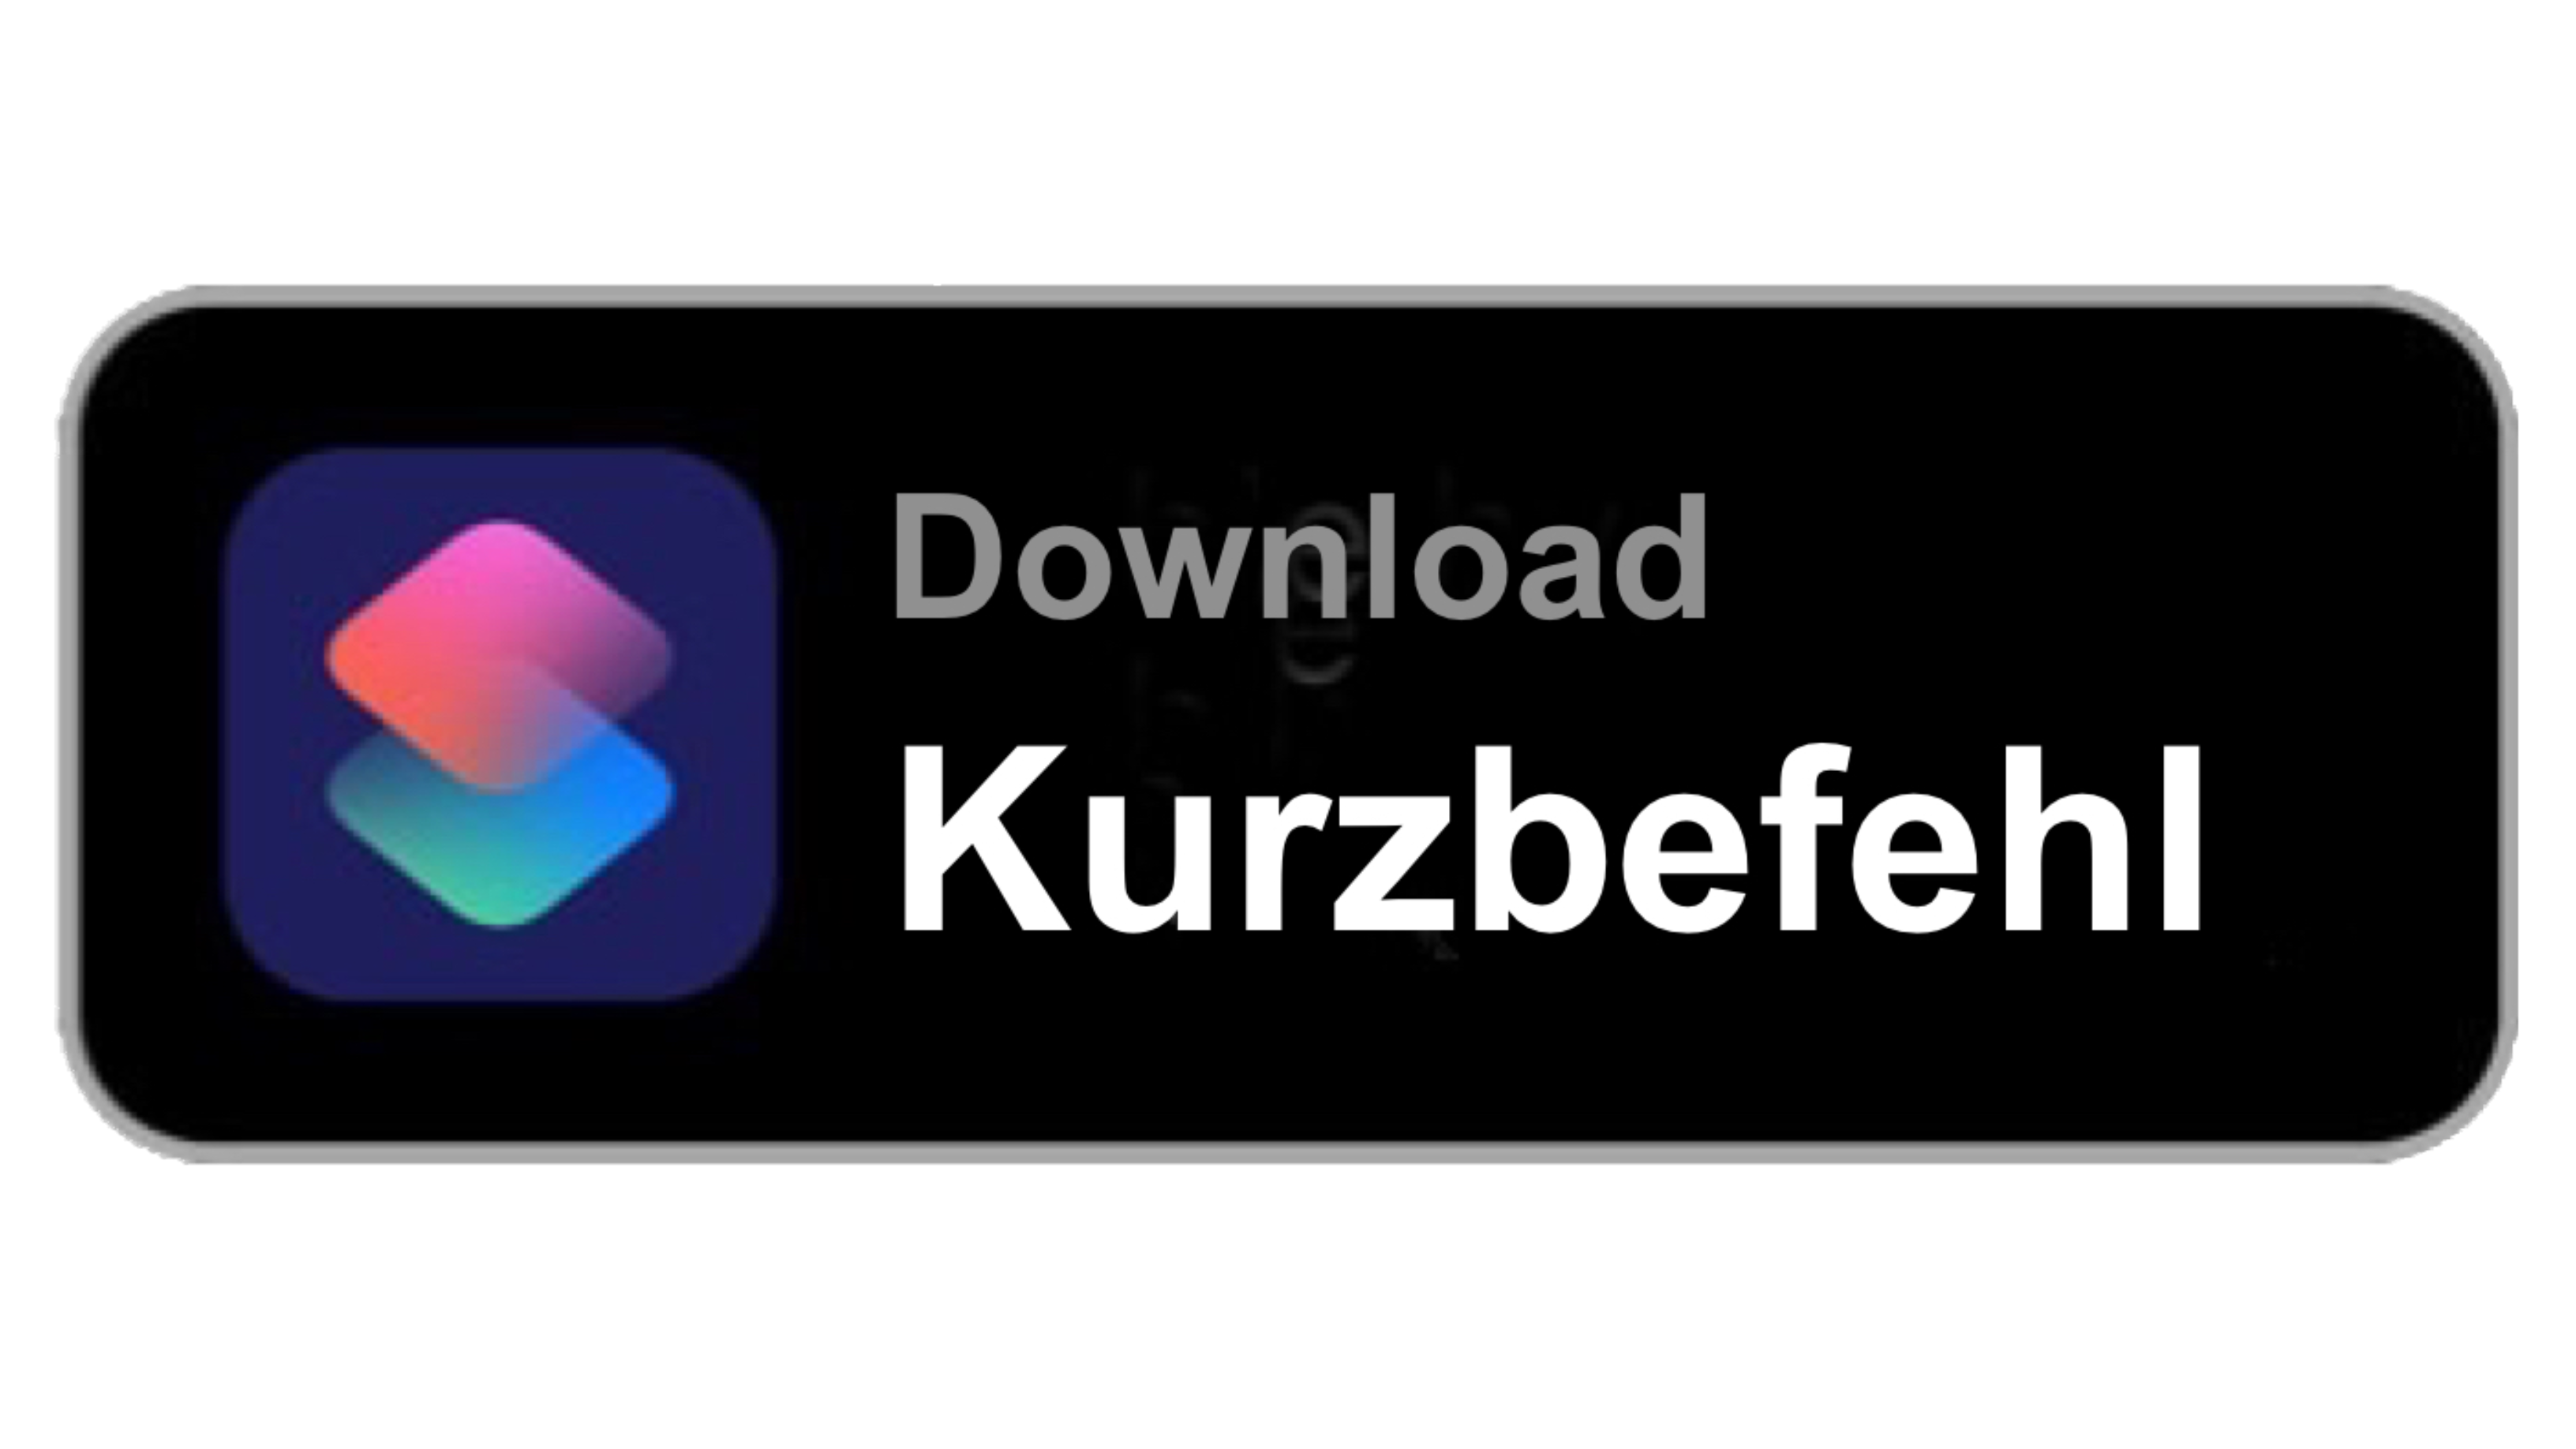 Download Kurzbefehls -  Music Timer